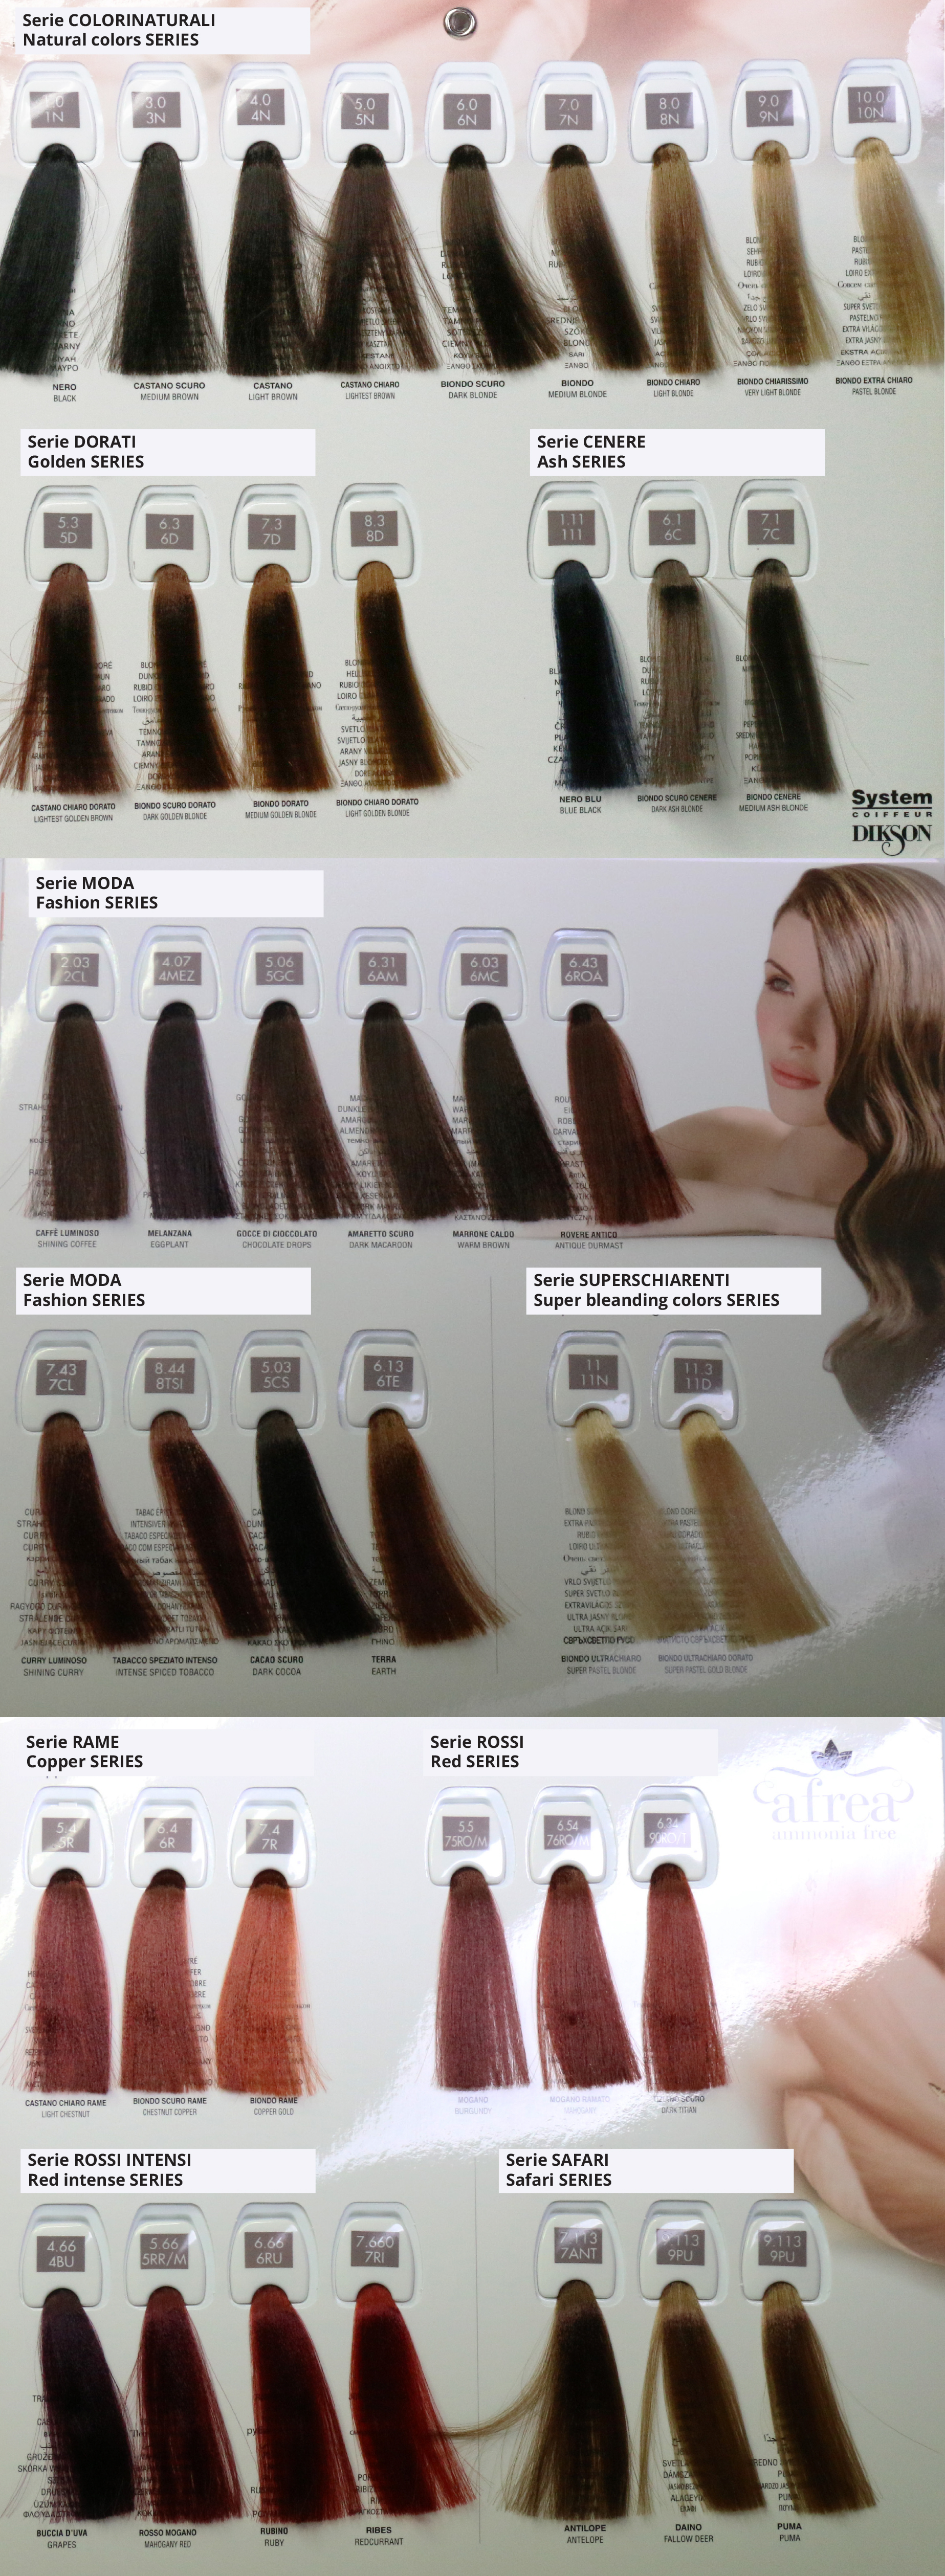 Tec Italy Hair Color Chart Best Hair Color 2018